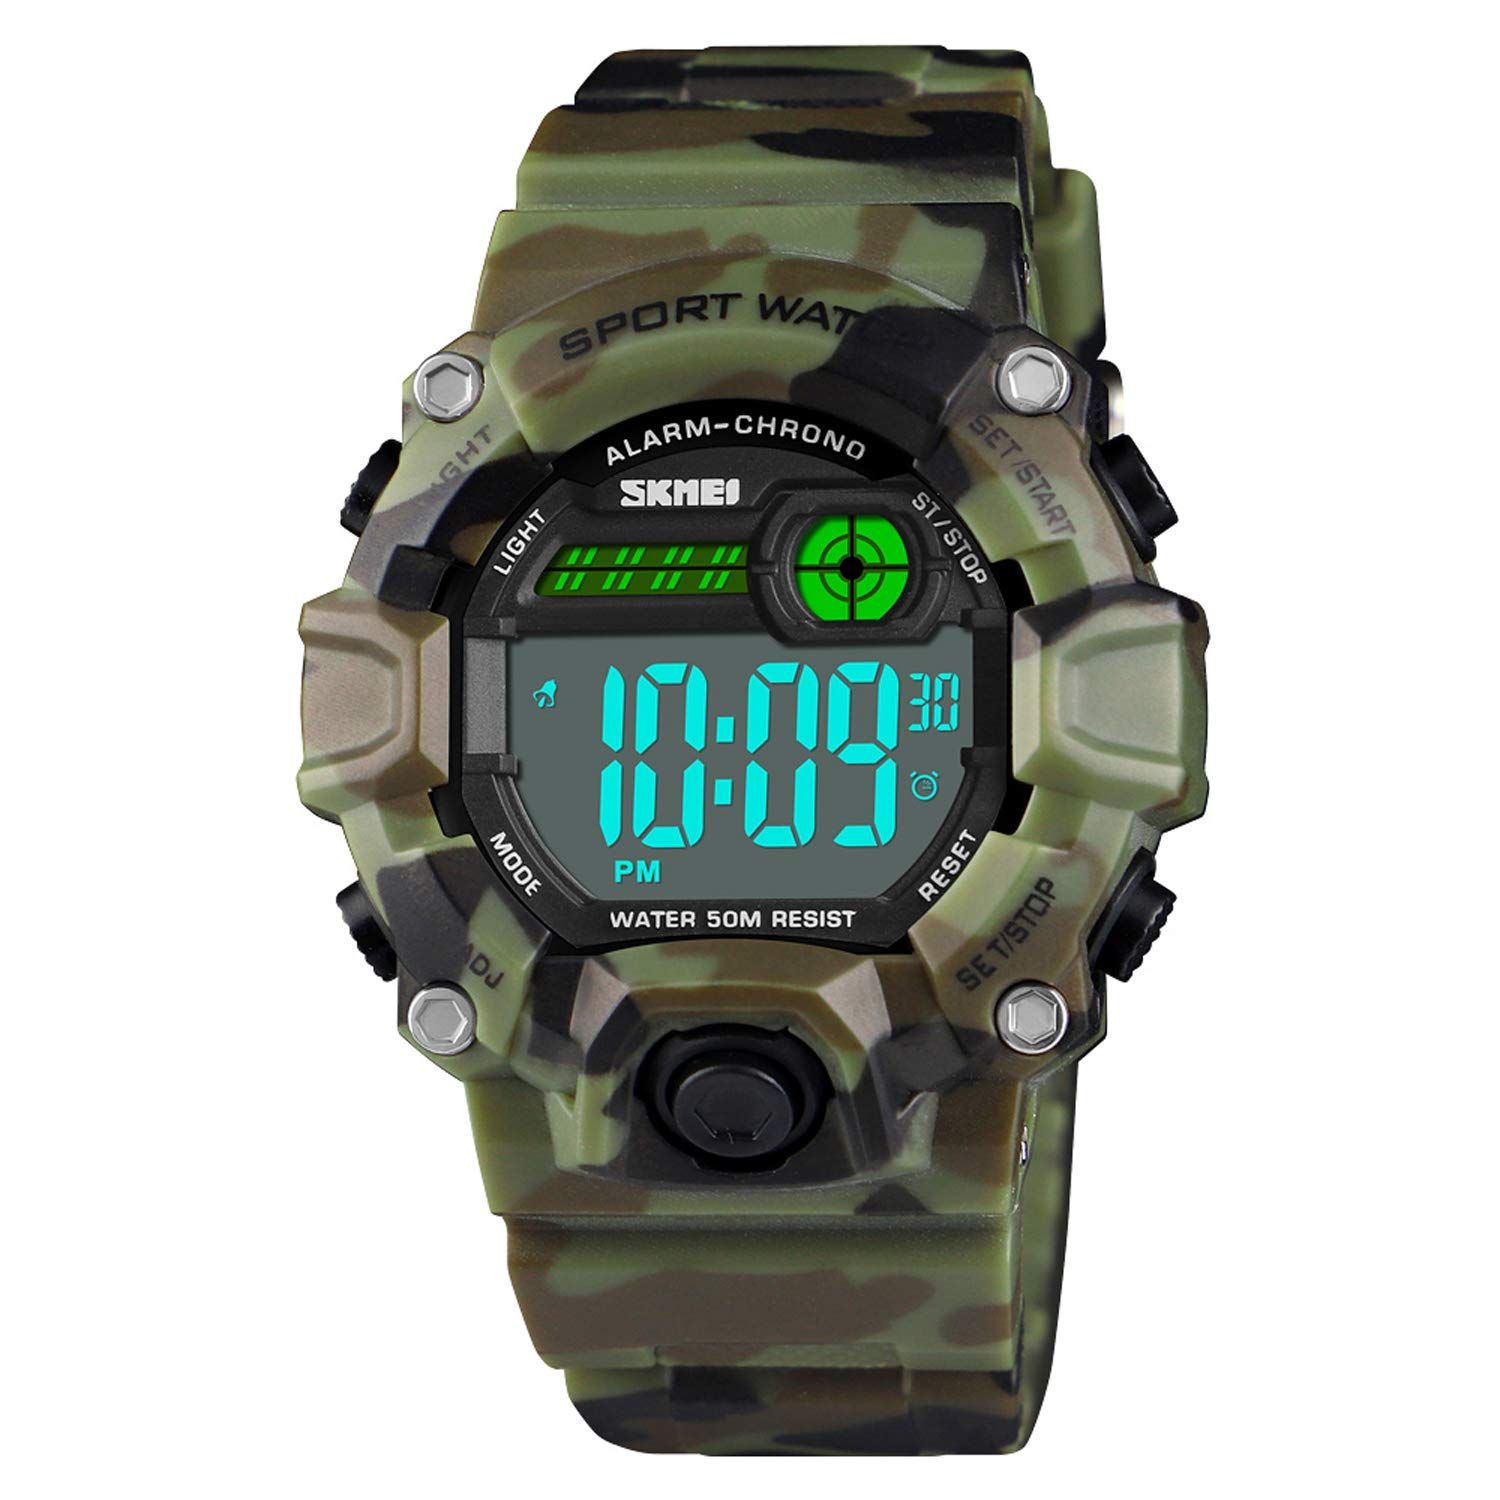 Boys Camouflage LED Sport Watch,Waterproof Digital Electronic Casual Military Wrist Kids Sports Watch with Silicone Band Luminous Alarm Stopwatch Watches by CakCity